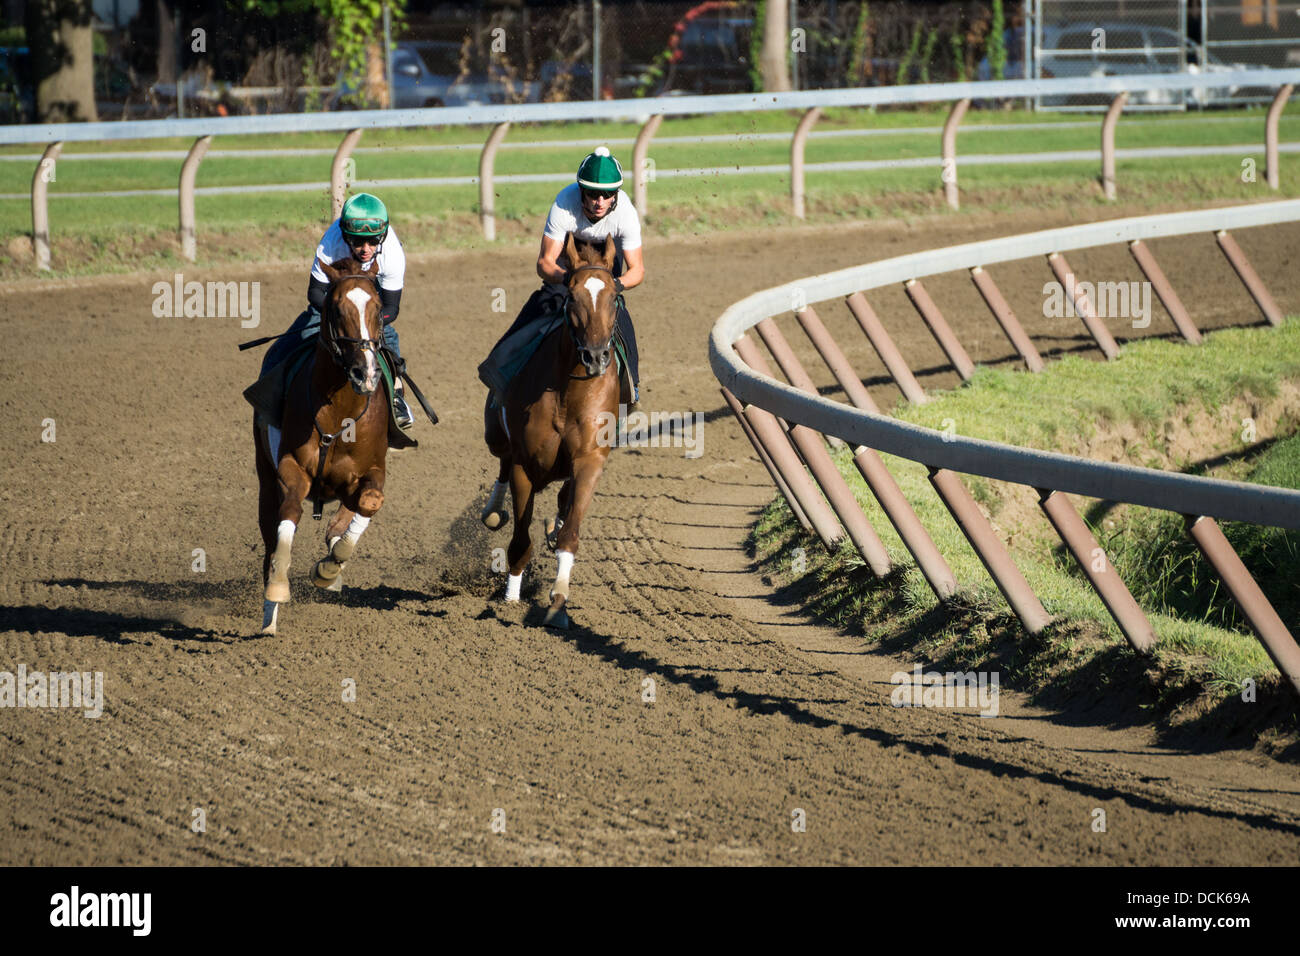 Horse And Rider Morning Exercise Racing Race Track Stock